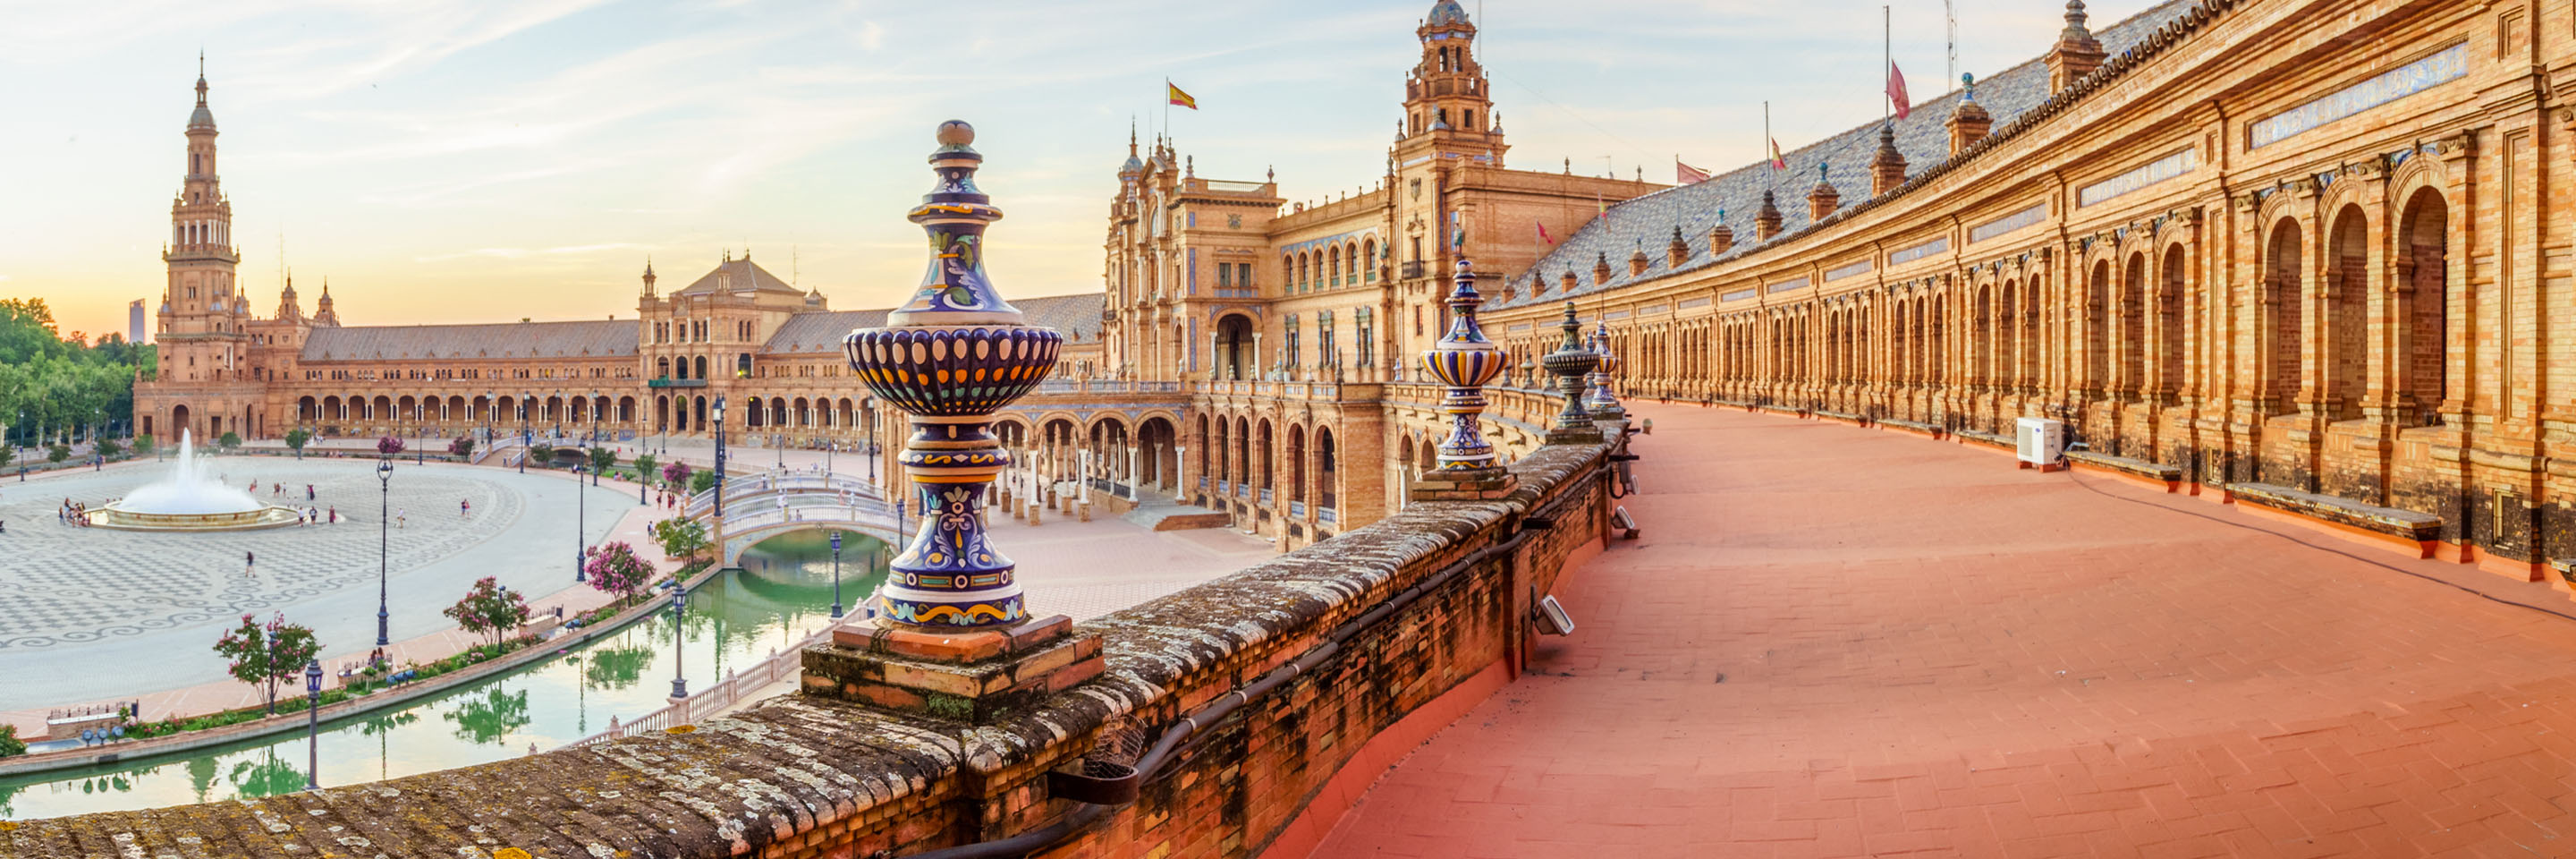 Spain guided vacations